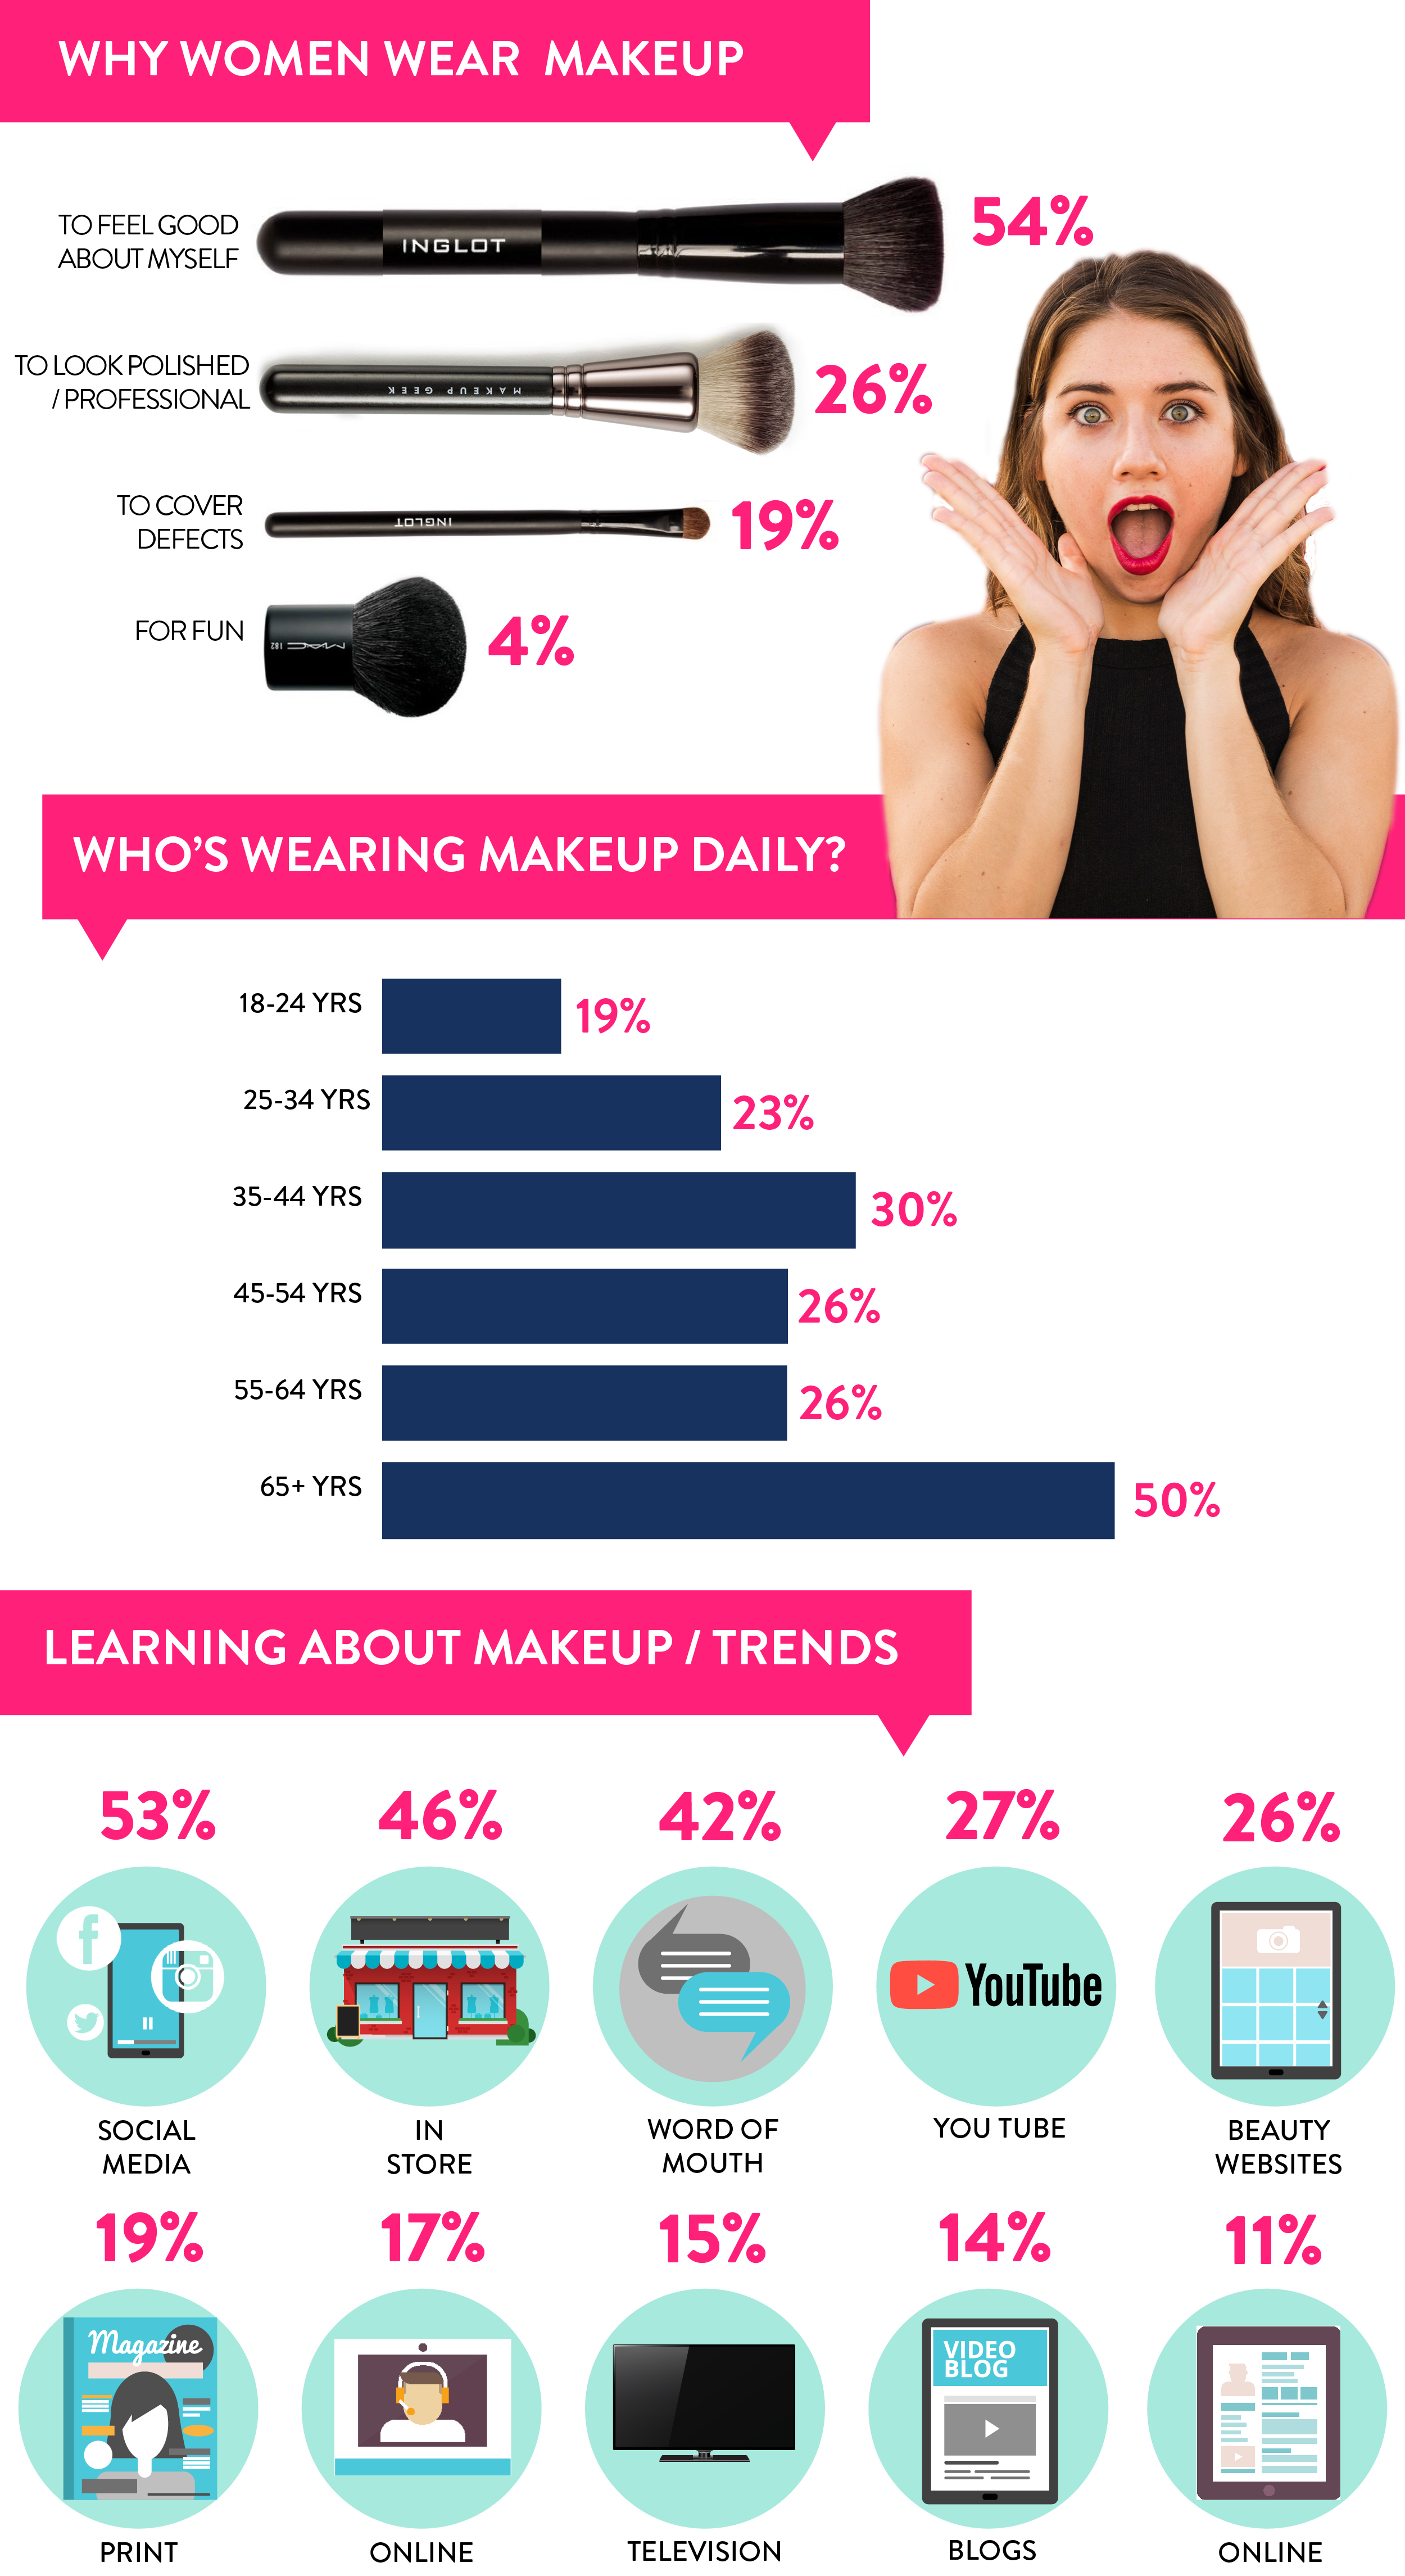 MAKE UP WHY AND HOW Q 2, 1, 19, 27.jpg